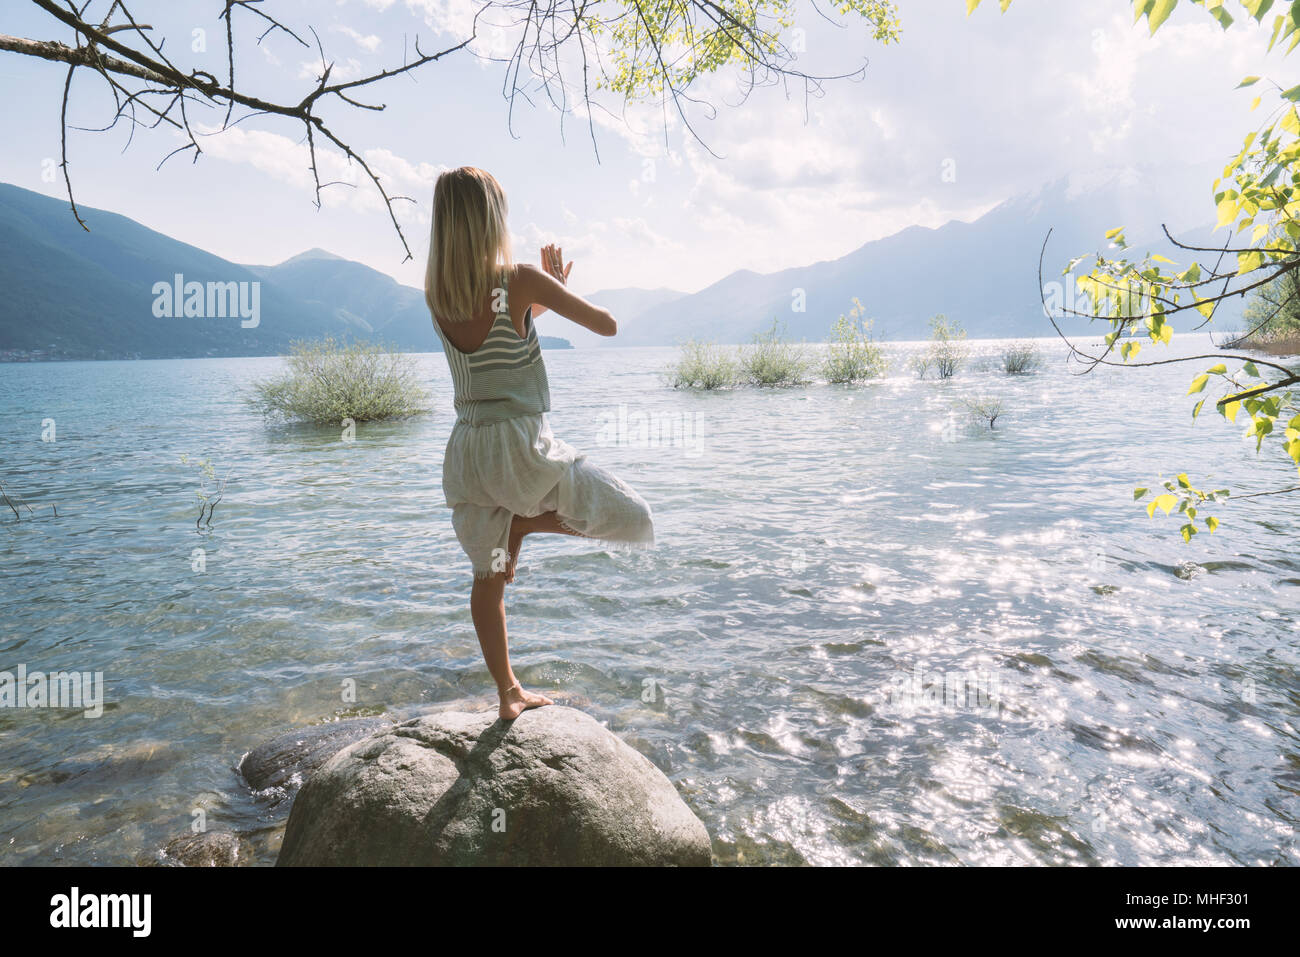 Young woman exercising yoga meditation and relaxation by lake shore in Ascona, Ticino, Switzerland, Europe. People travel wellbeing yoga zen concept Stock Photo